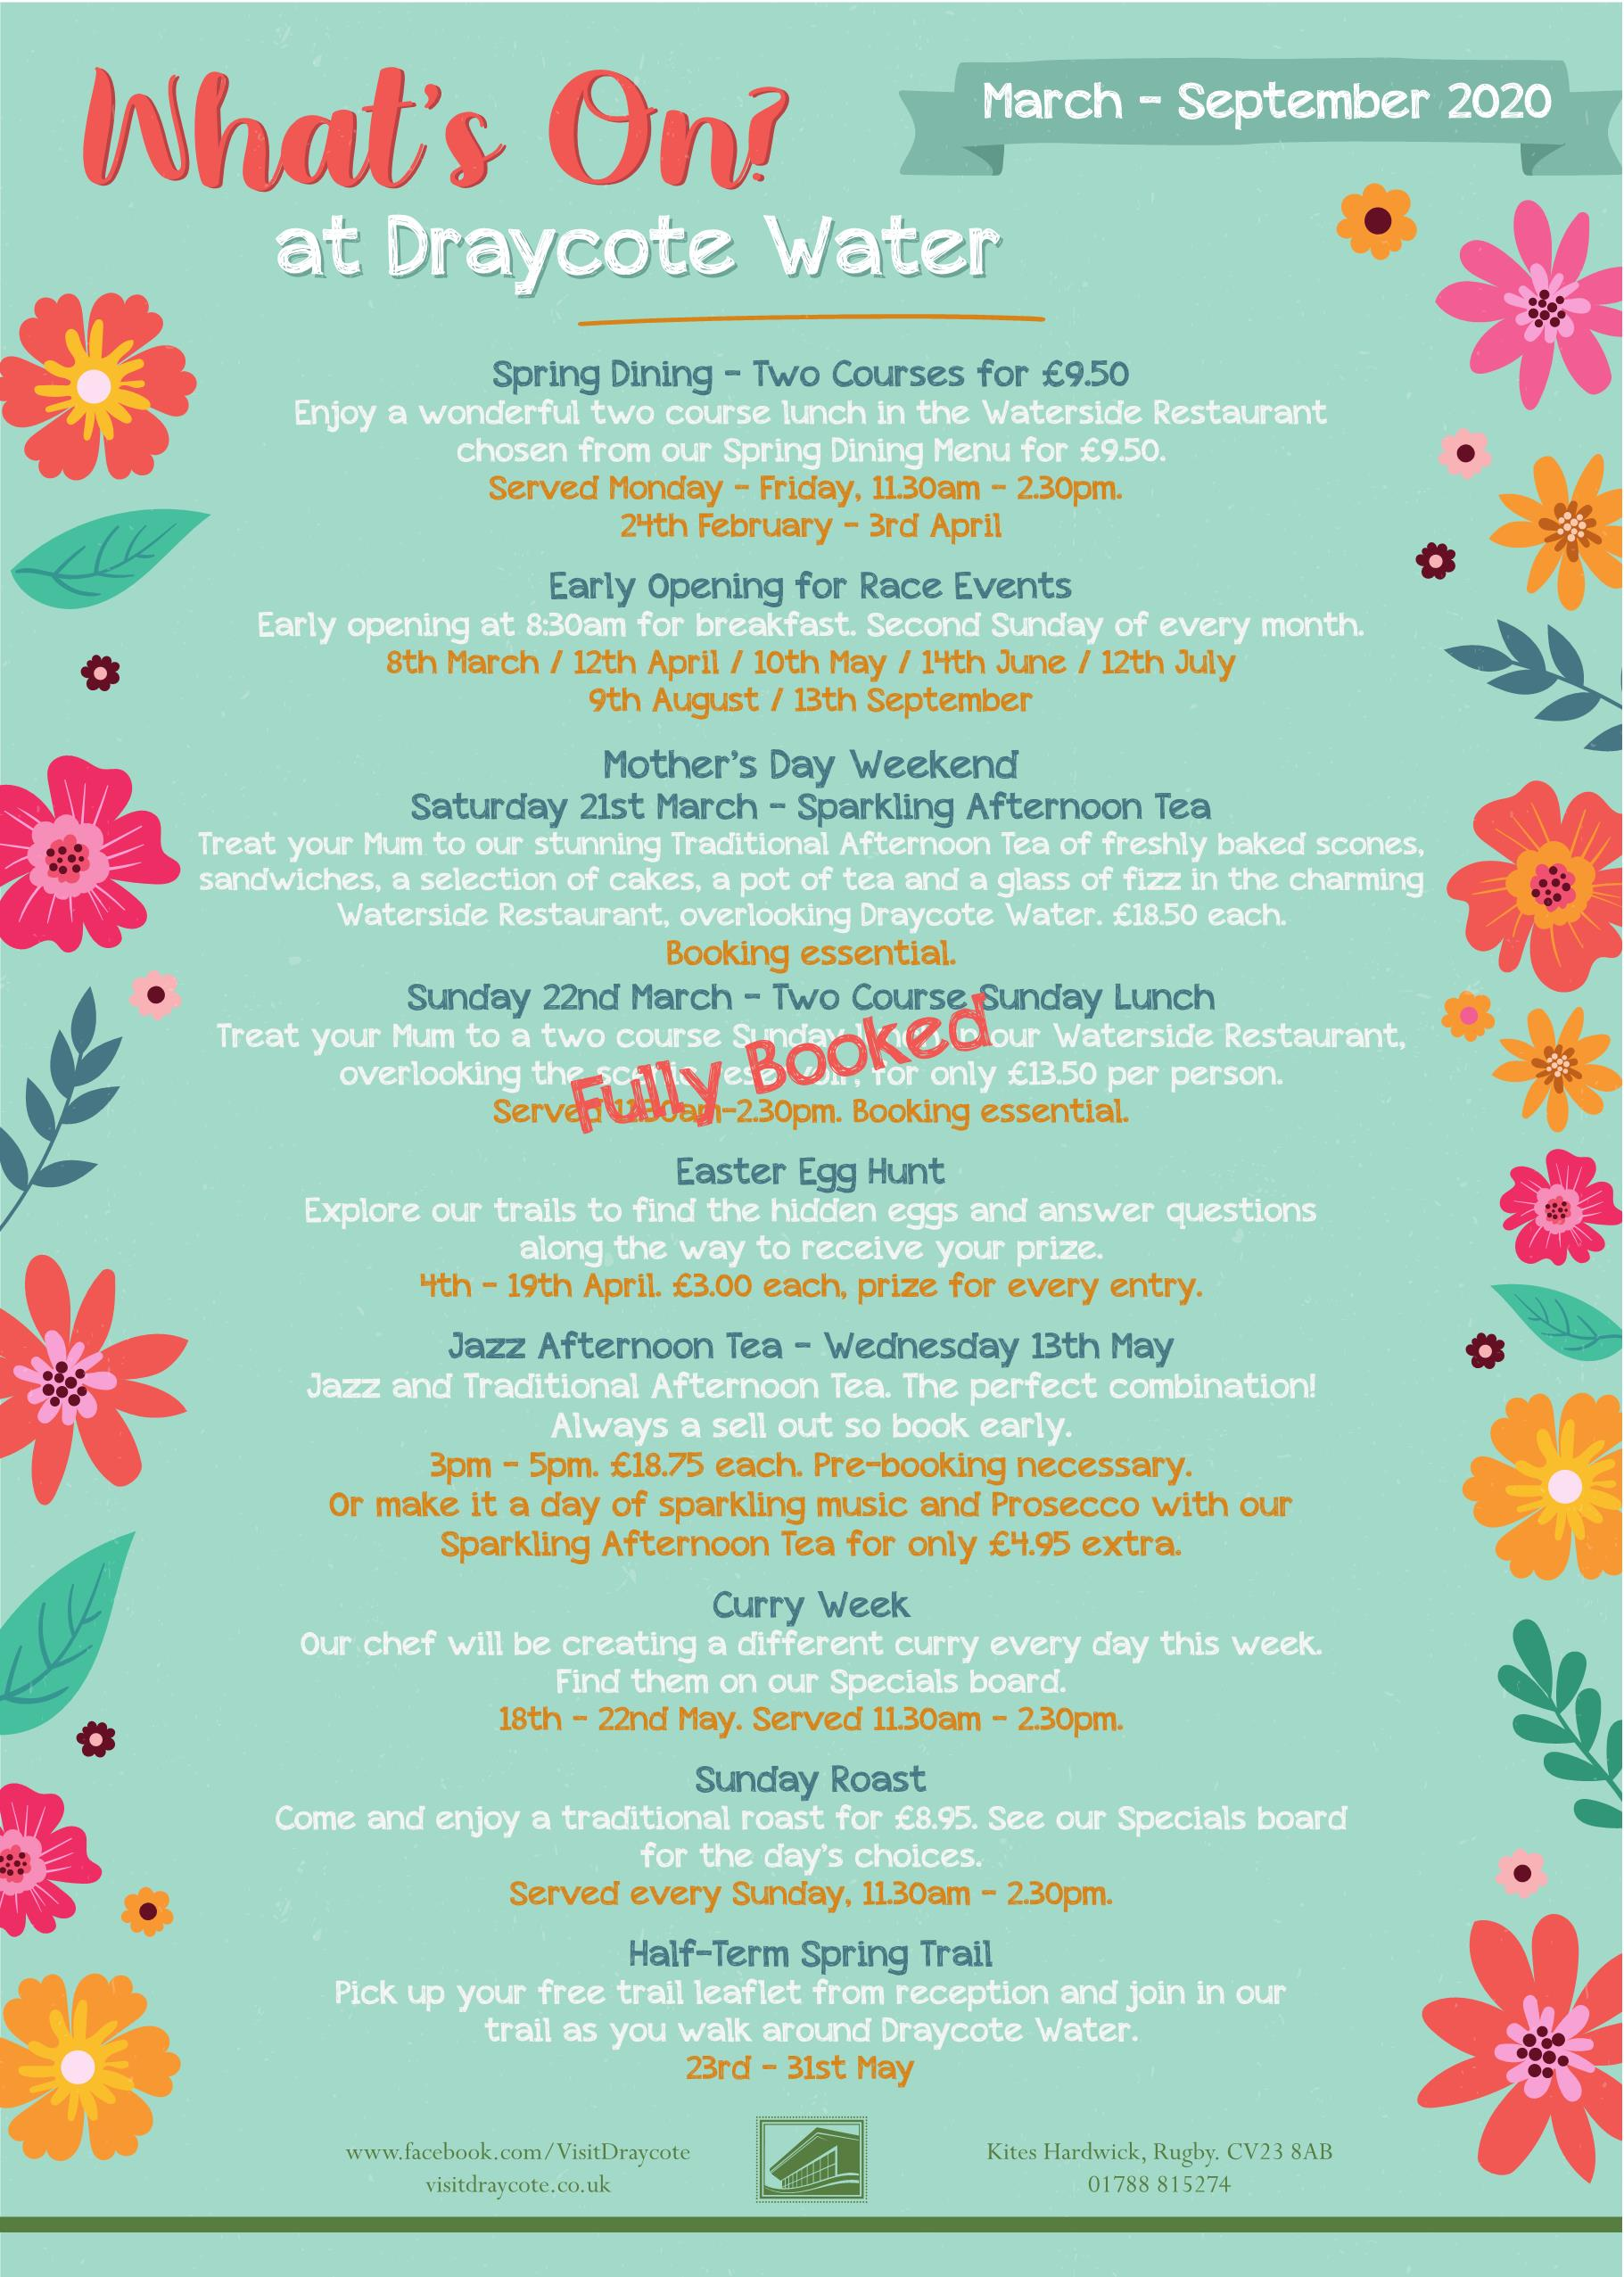 What's On at Draycote Water - 2020 (1)